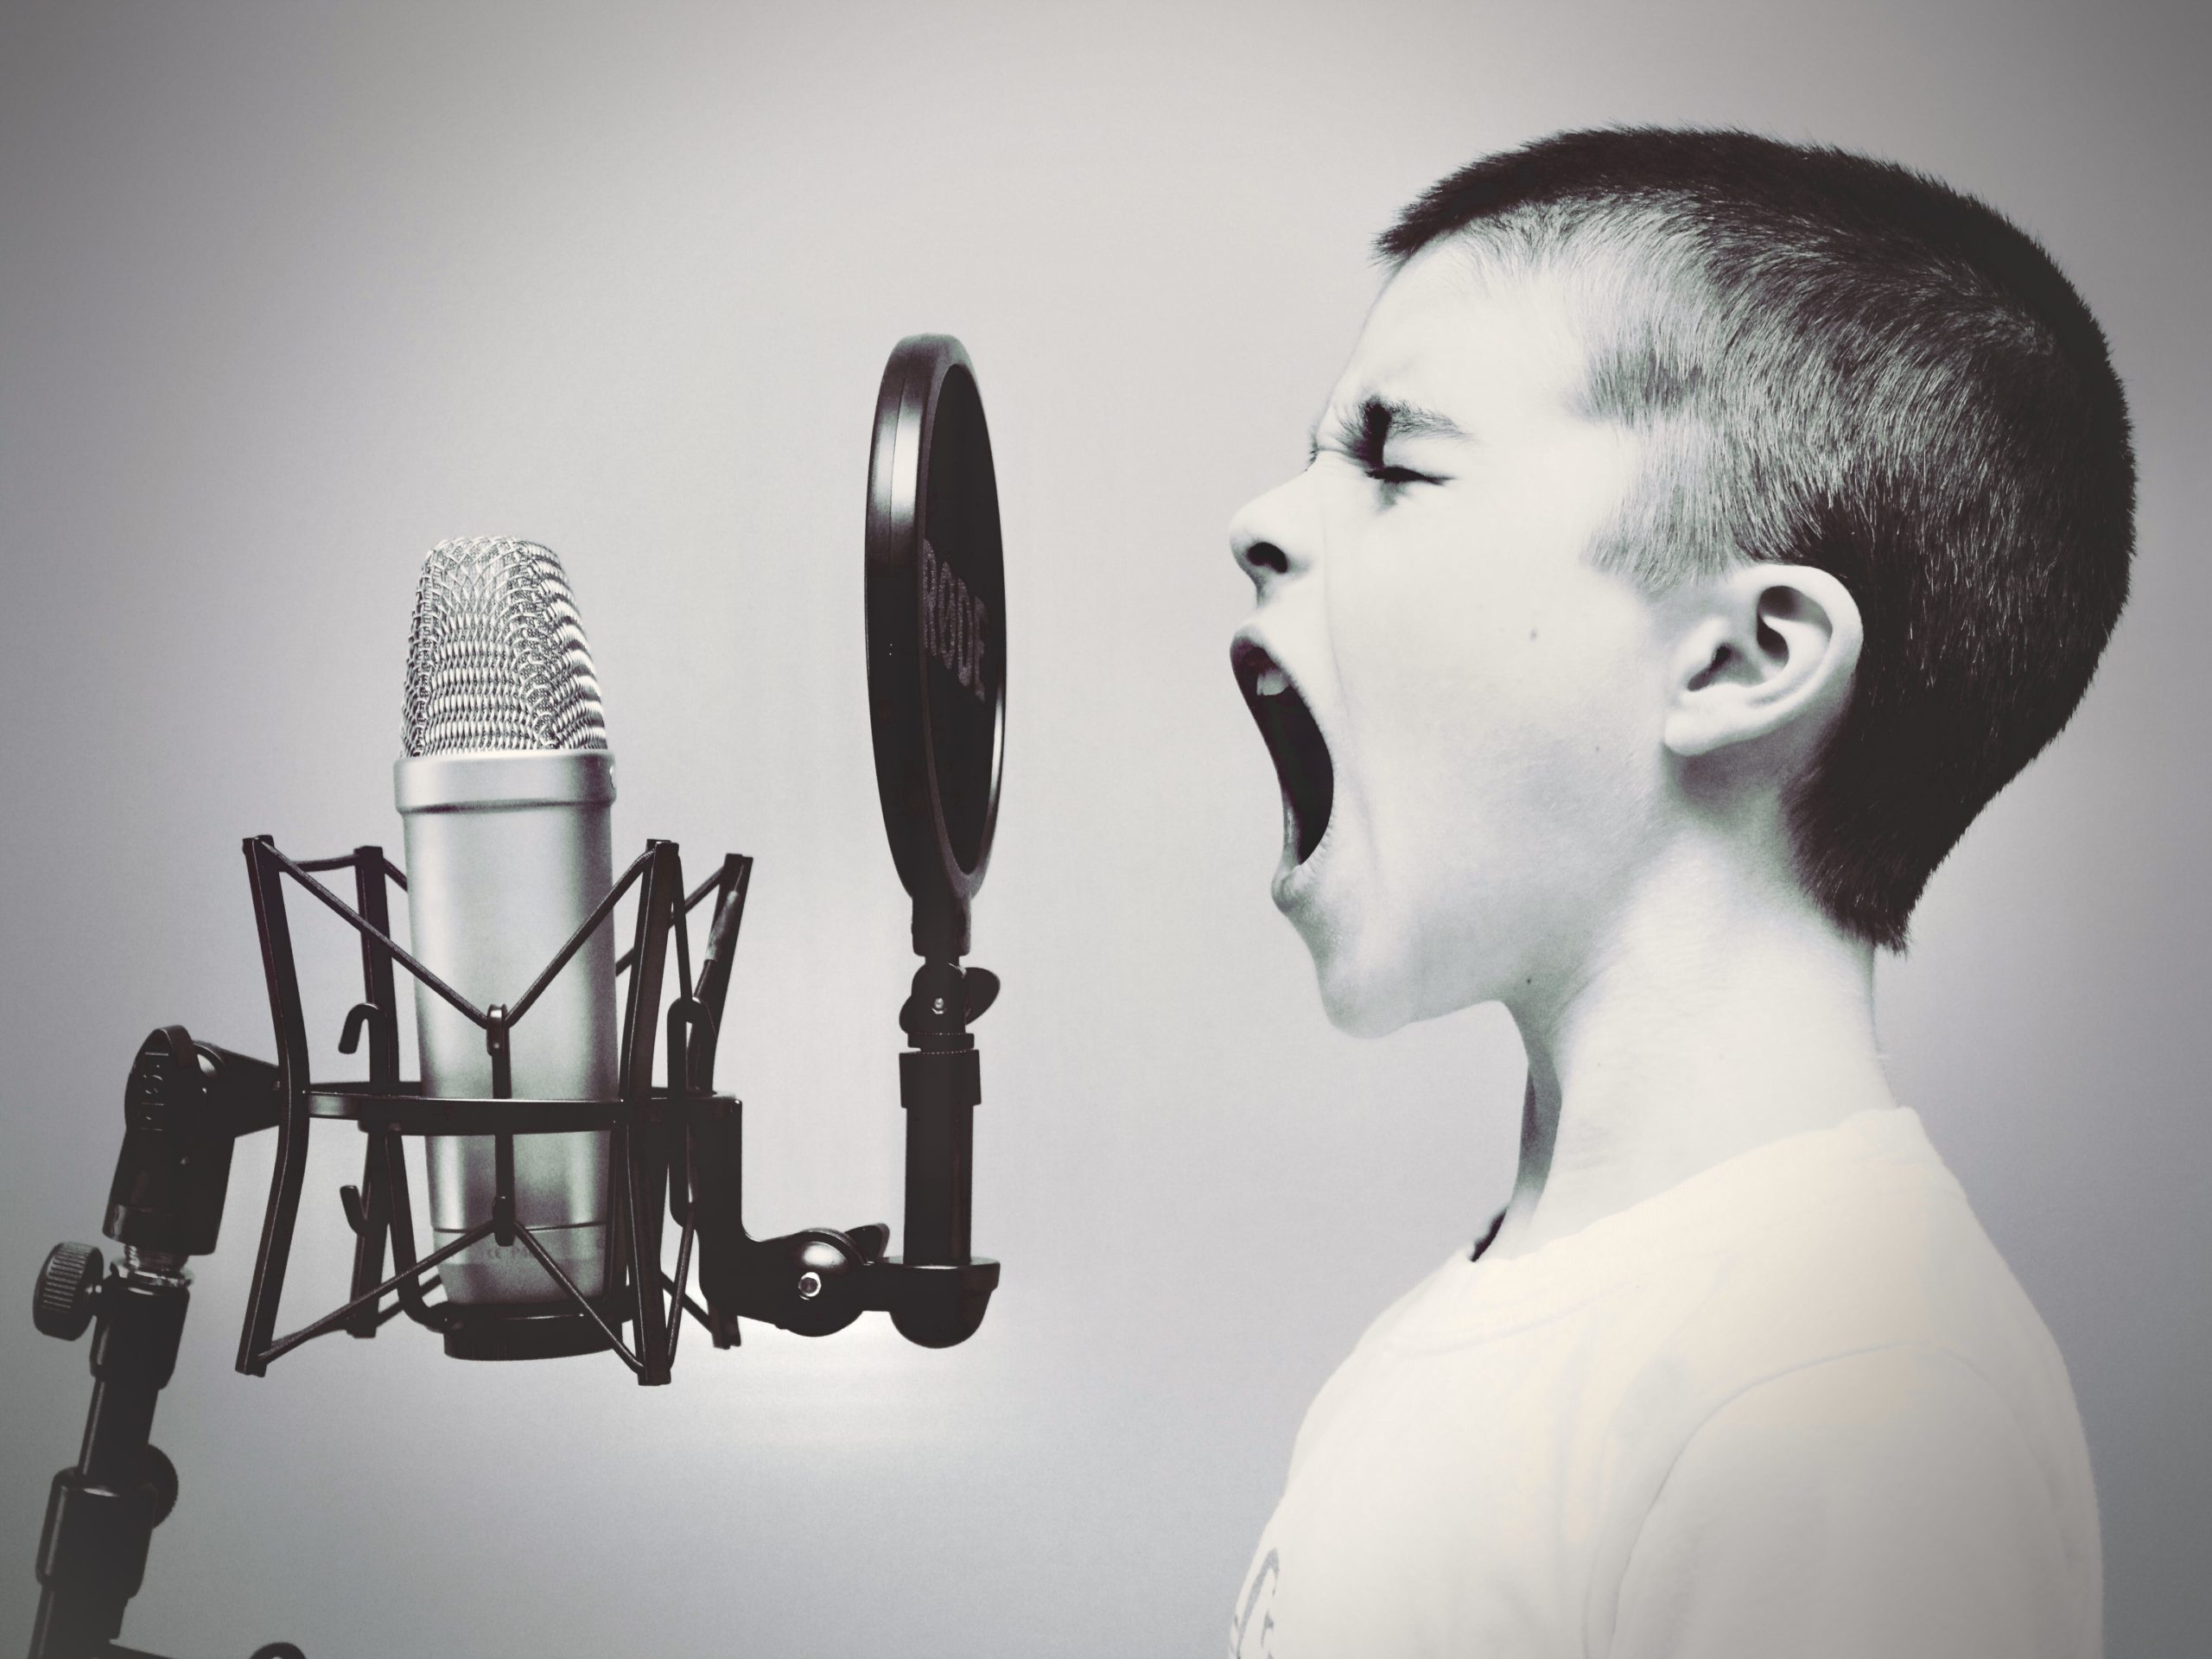 Boy singing on a microphone; Parry sound, Canada